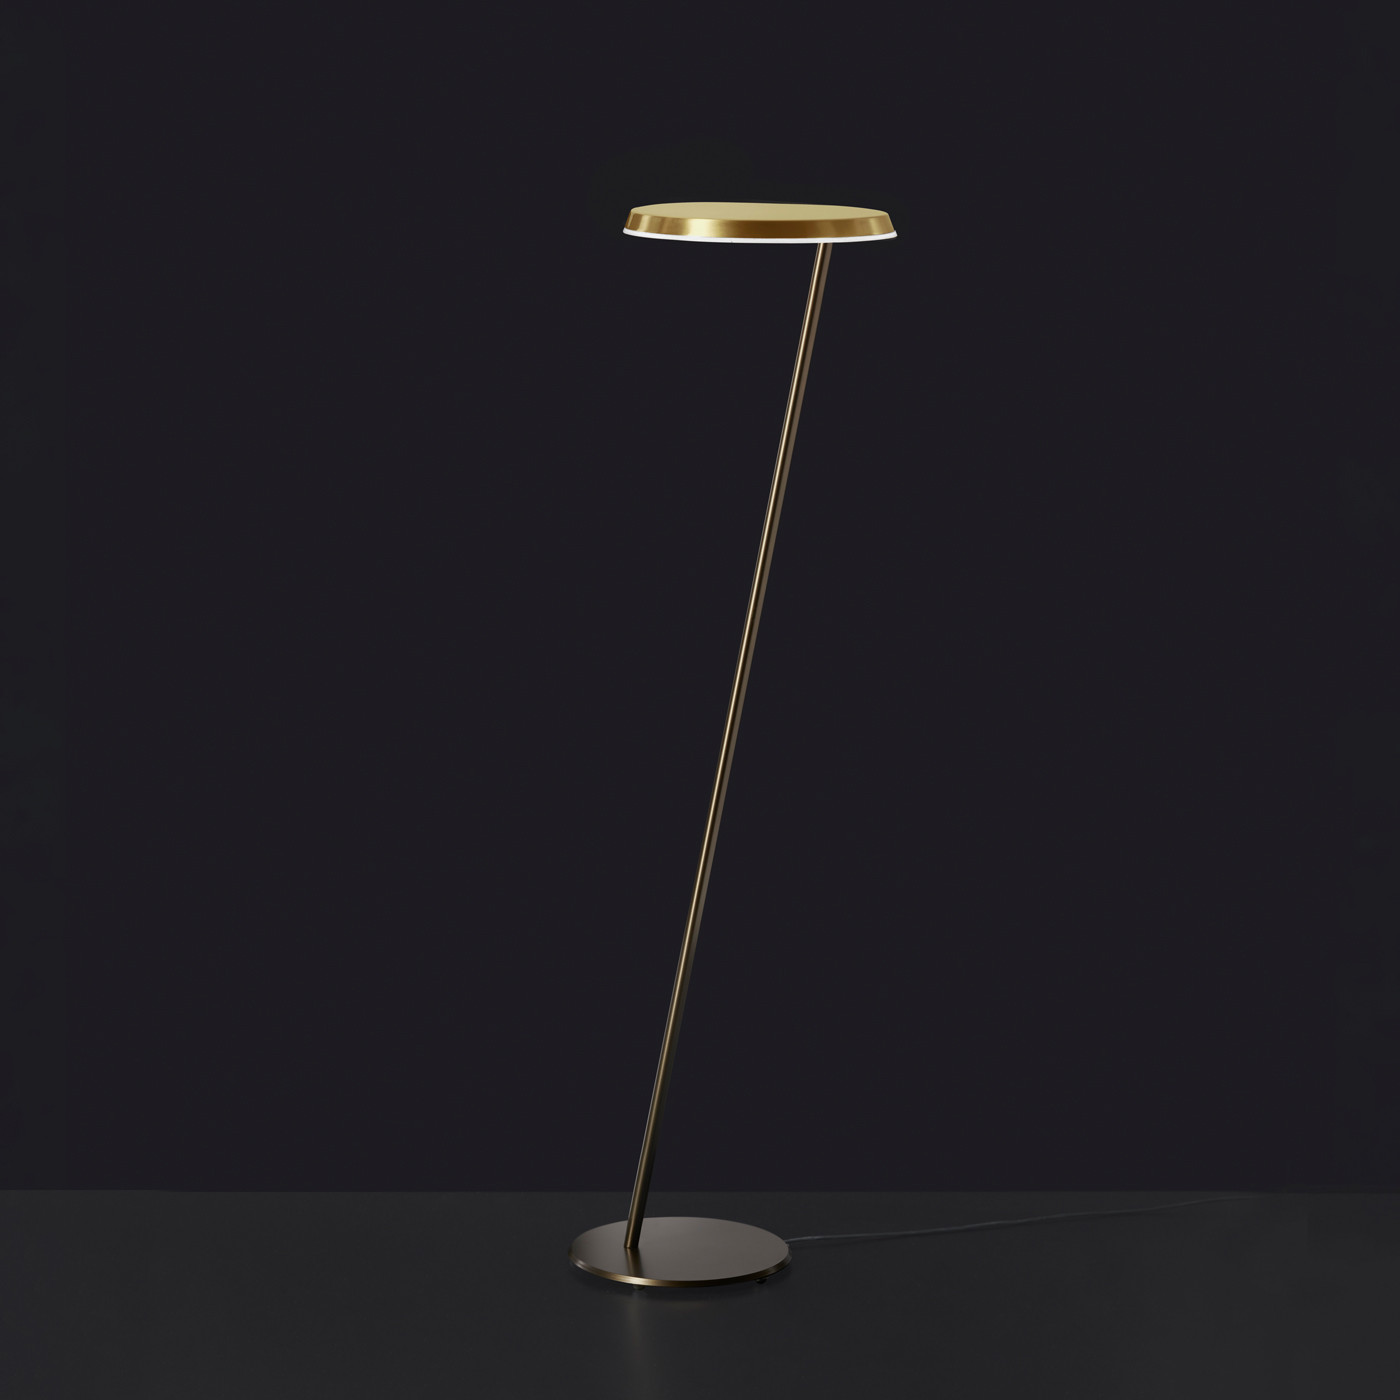 Oluce Amanita 619 Floor Lamp At Nostraforma